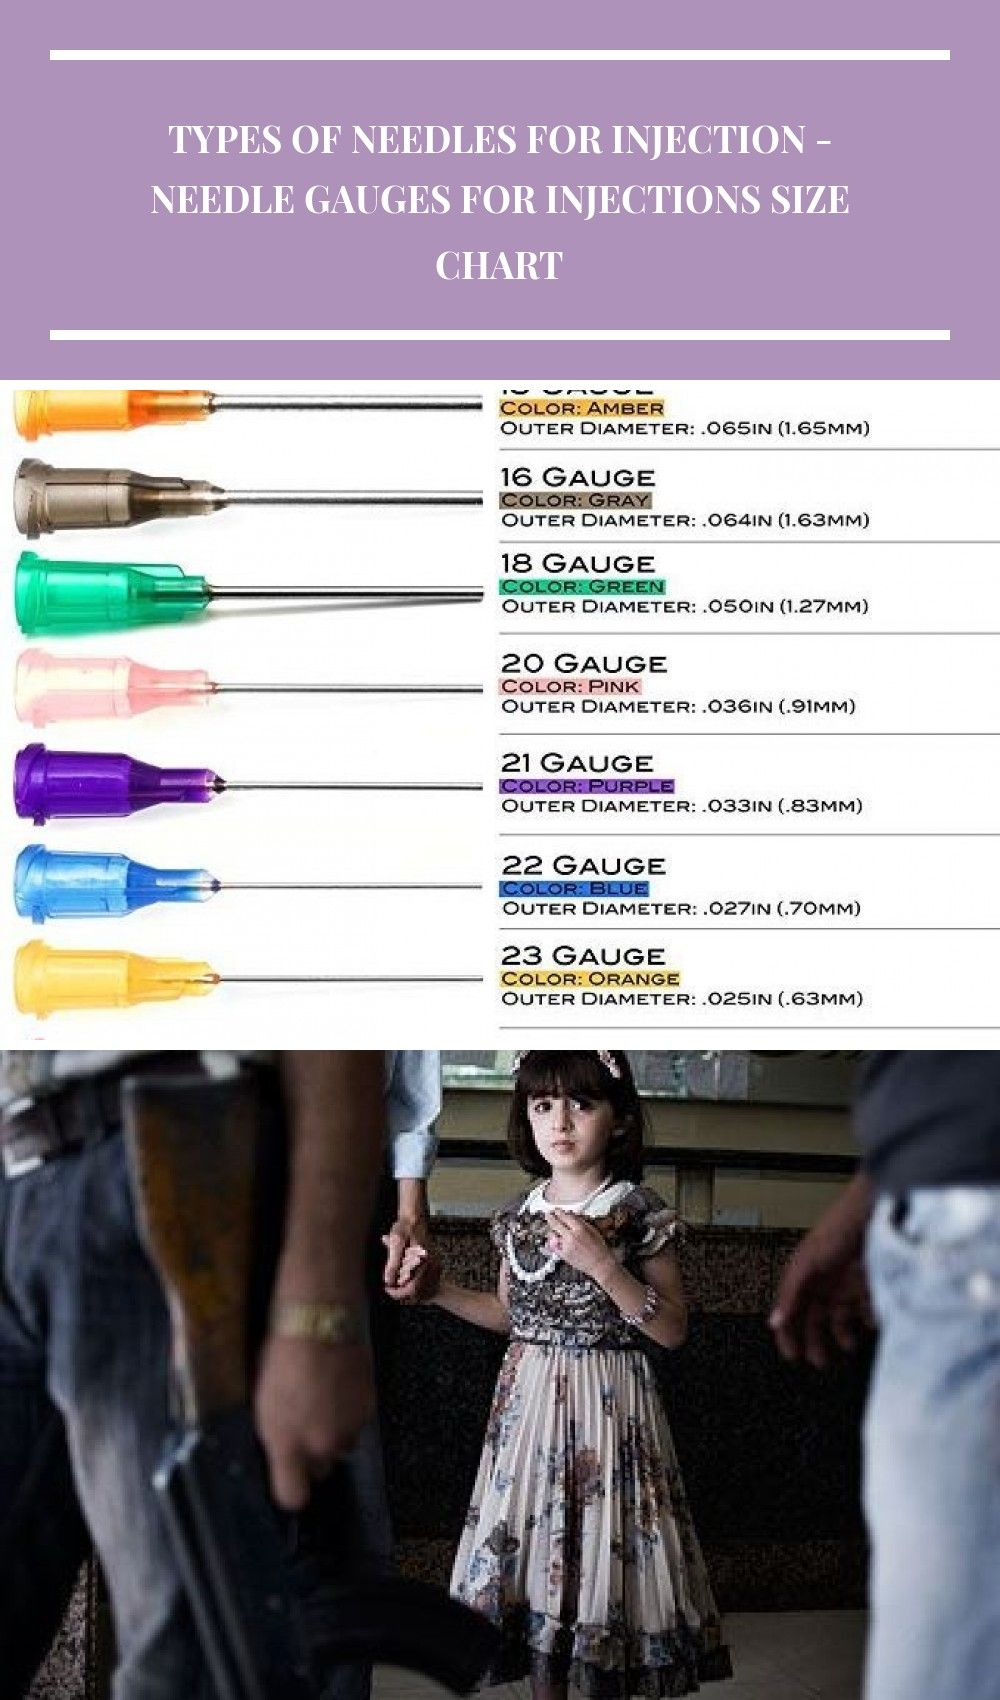 Needle Gauges For Injections Size Chart Types Of Needles For Injection Choosing A Syringe And Needle Size For An Injection Princ Needle Gauge Injections Needle